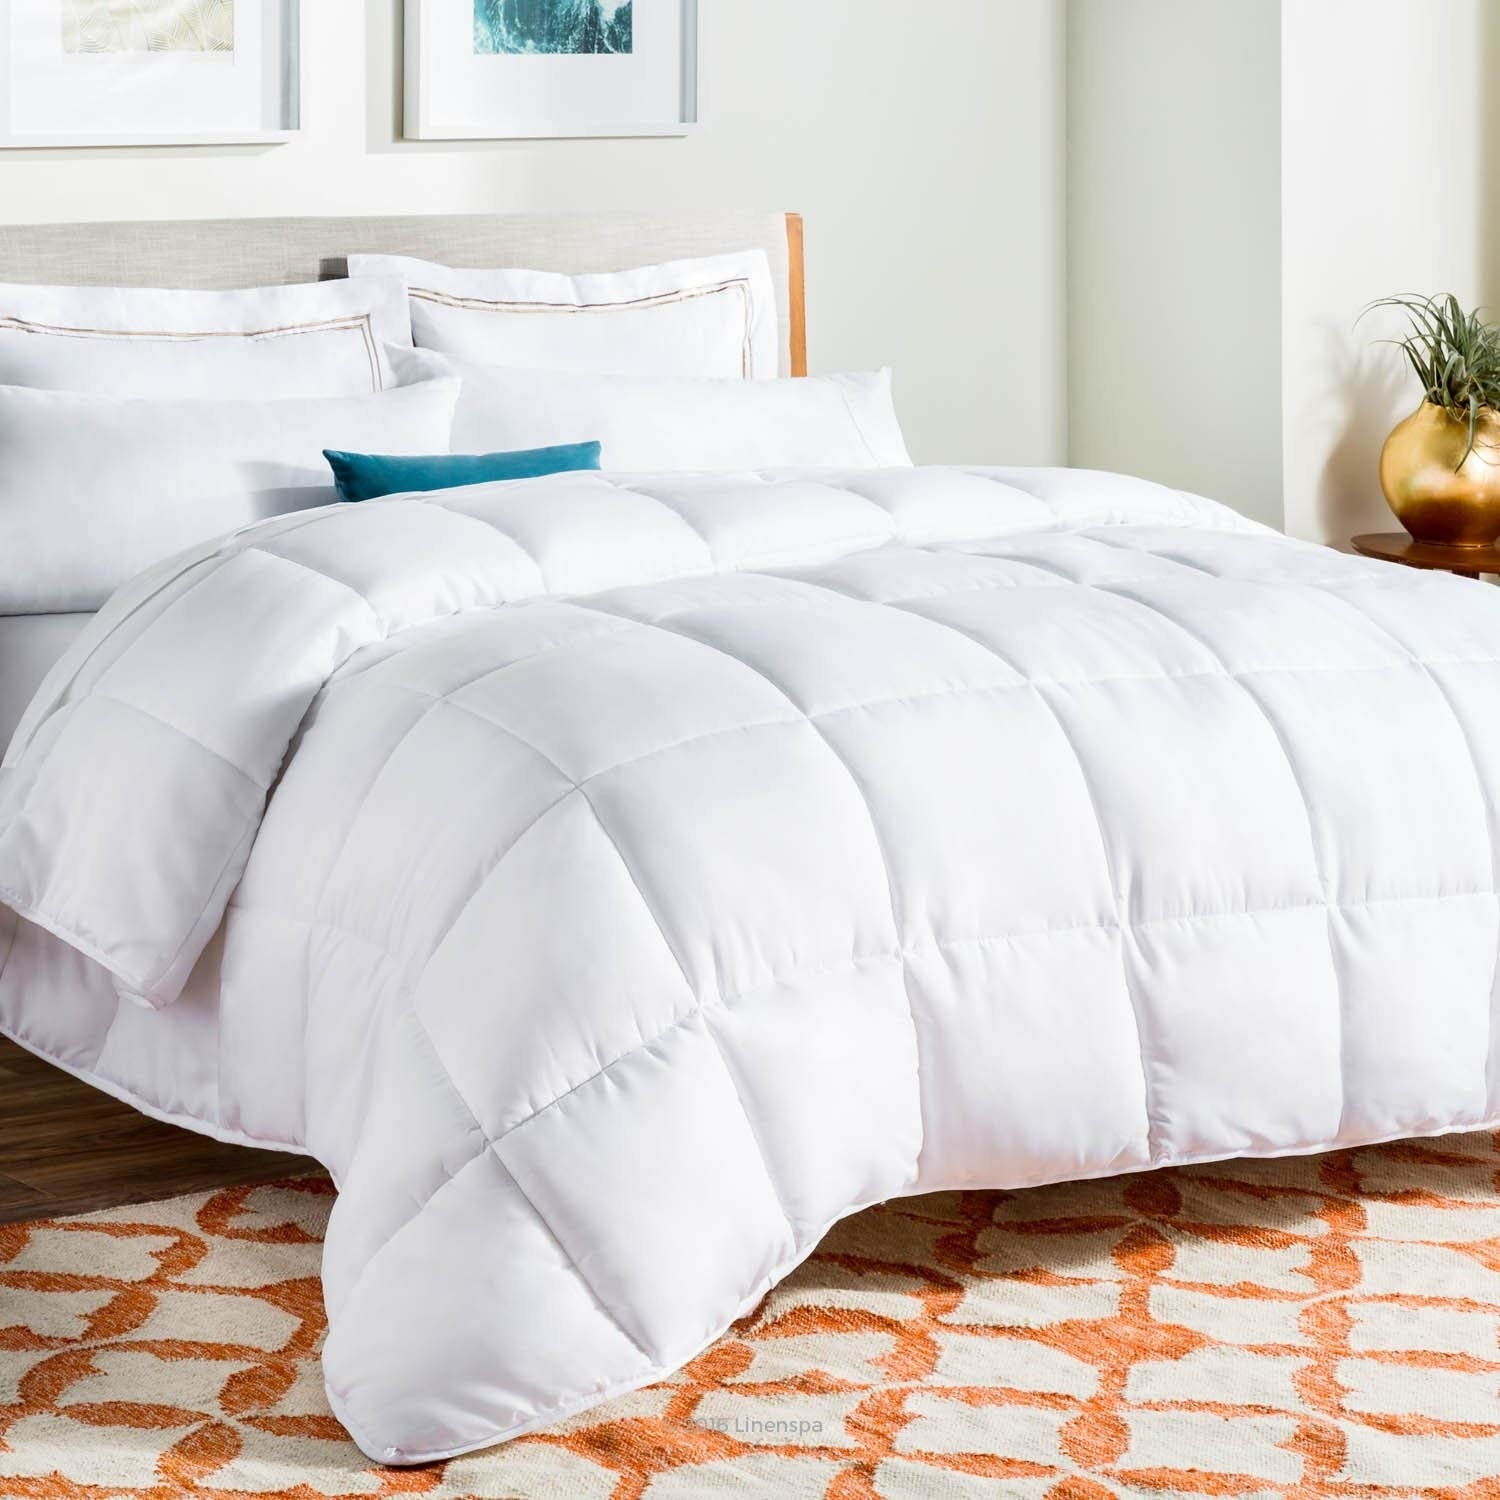 The baffle-box comforter on a queen size bed